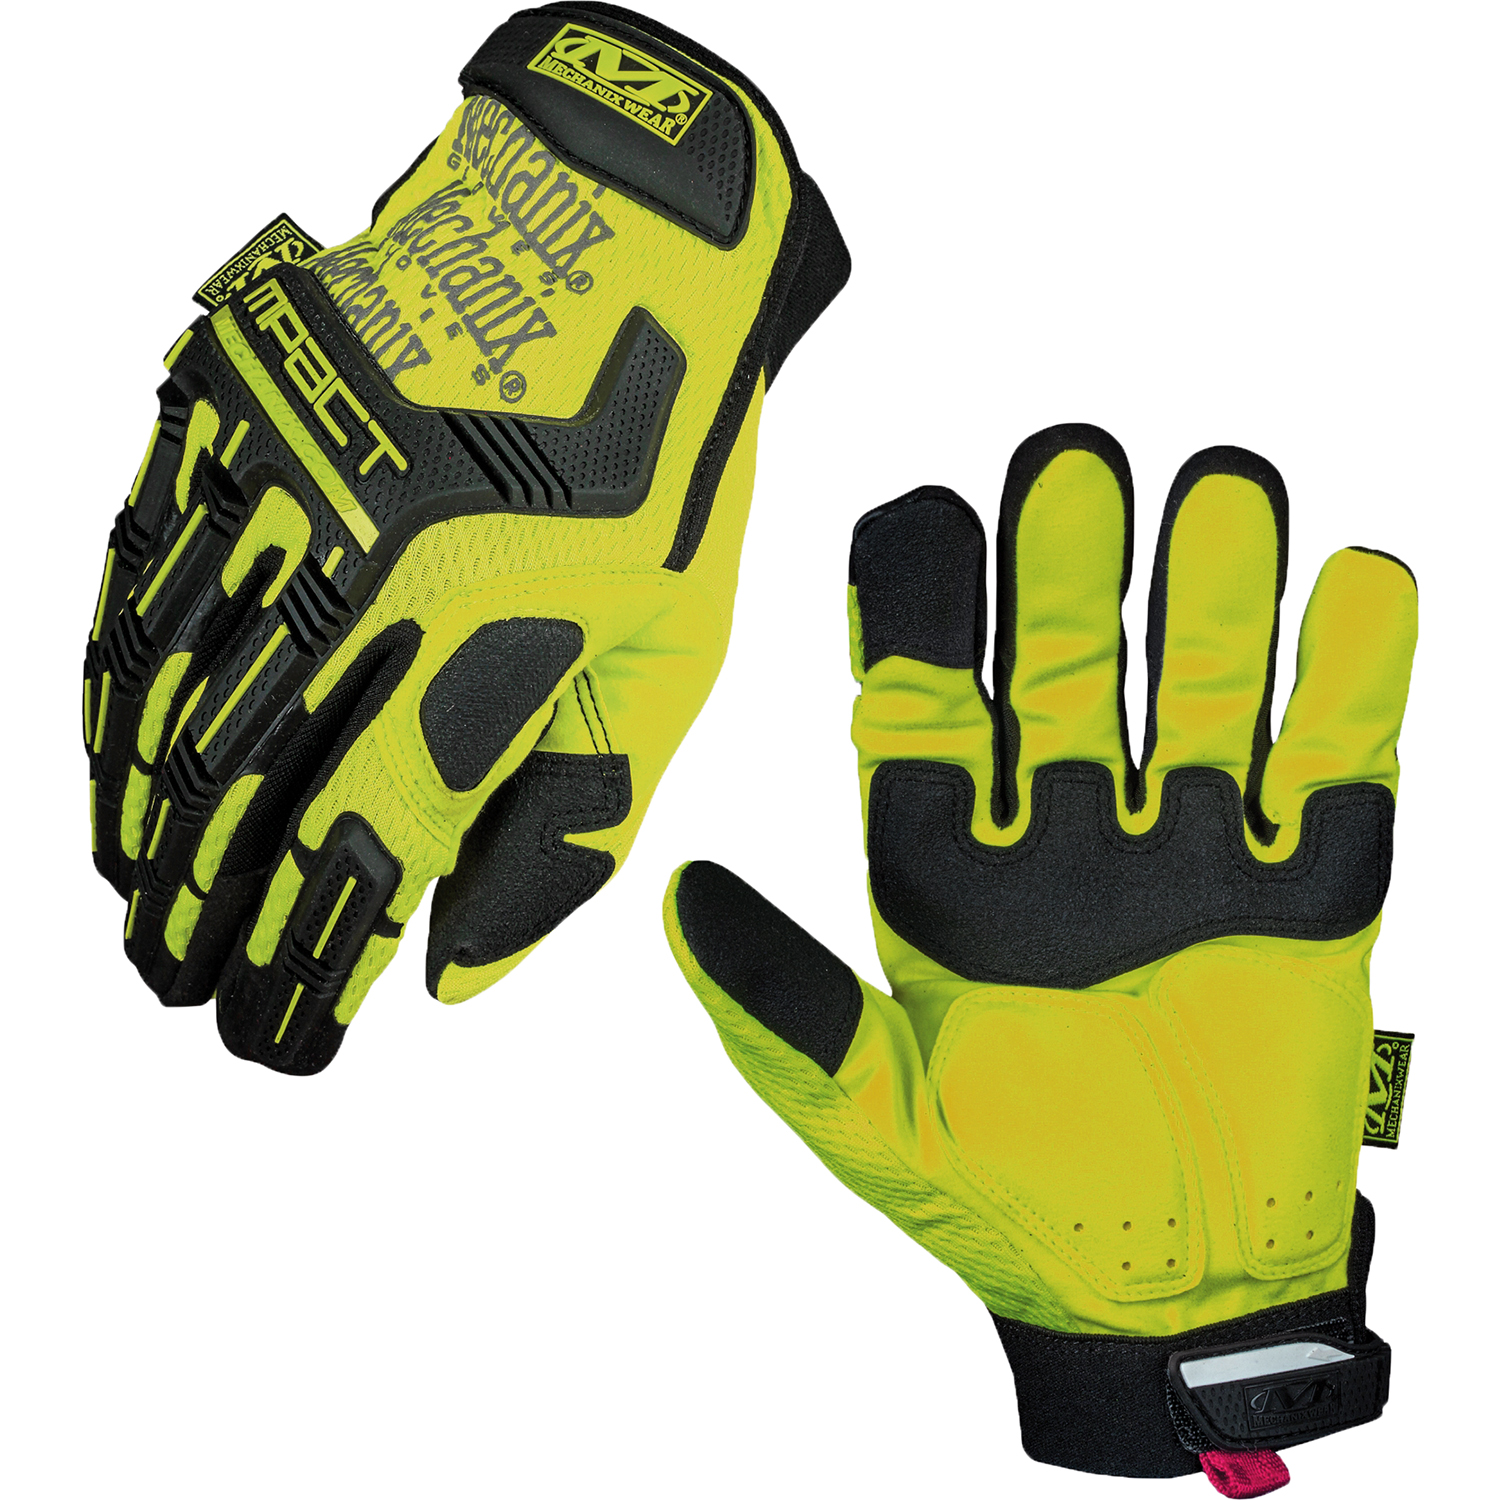 Leather work gloves m pact 2 - Mechanix Wear Safety M Pact Protection High Visibility